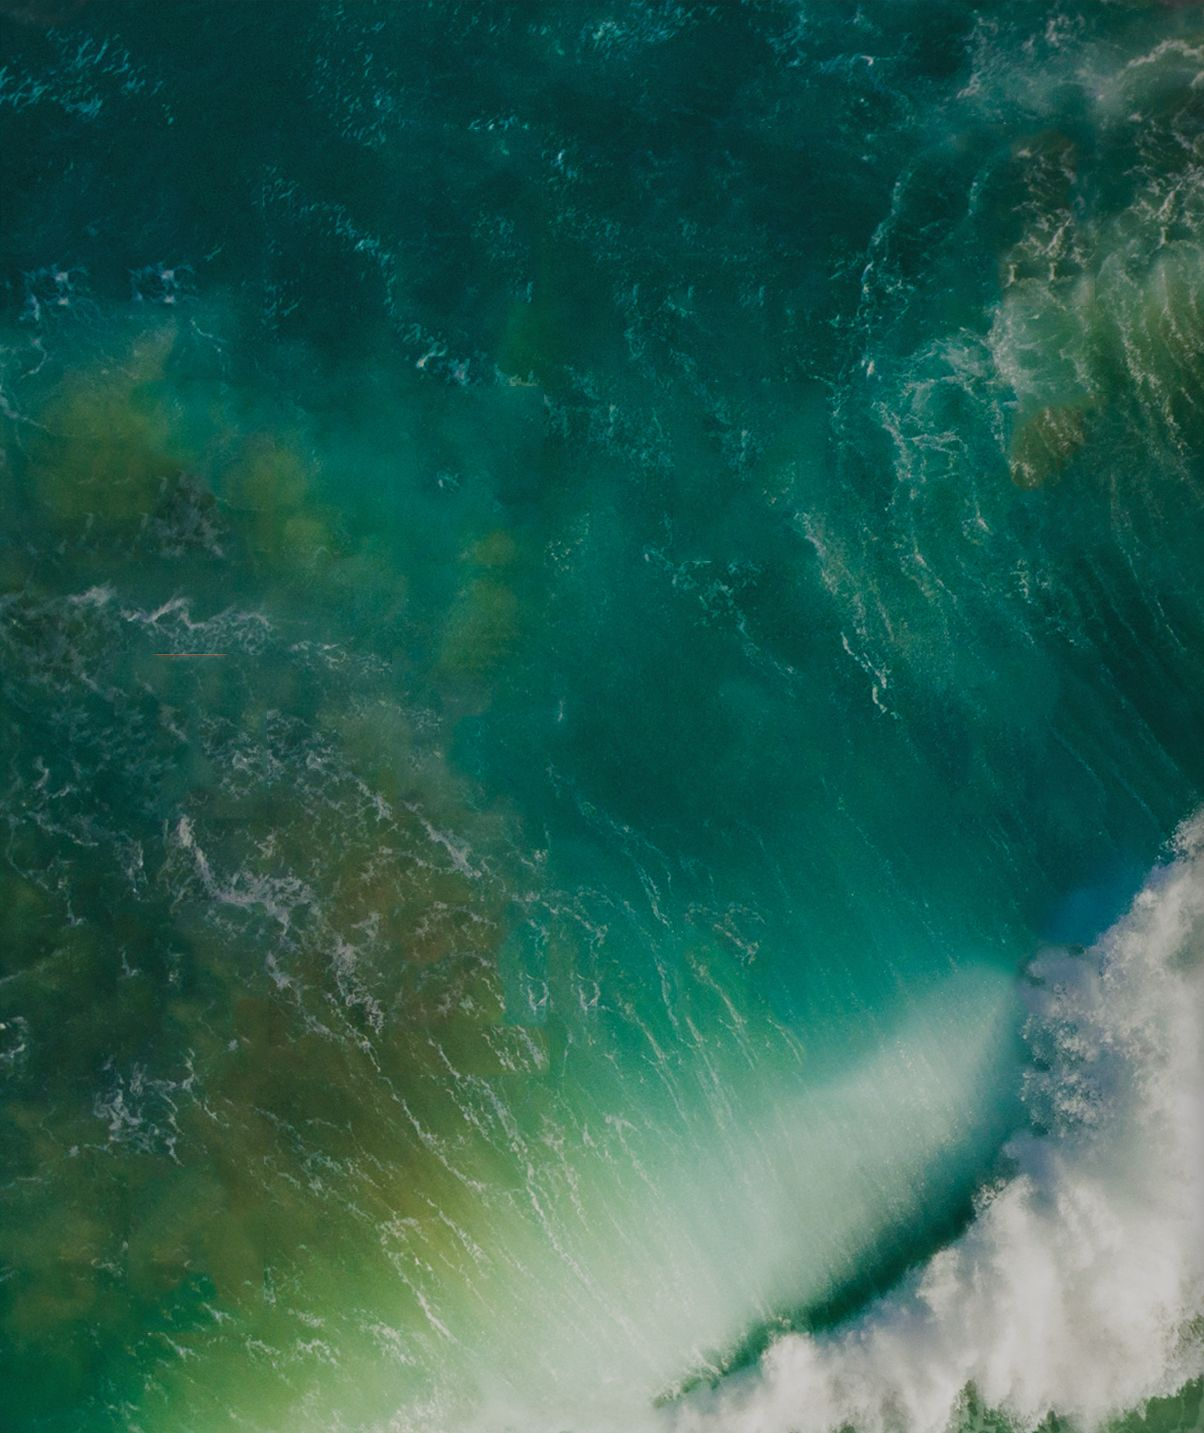 iOS 10 wallpaper preview.jpg